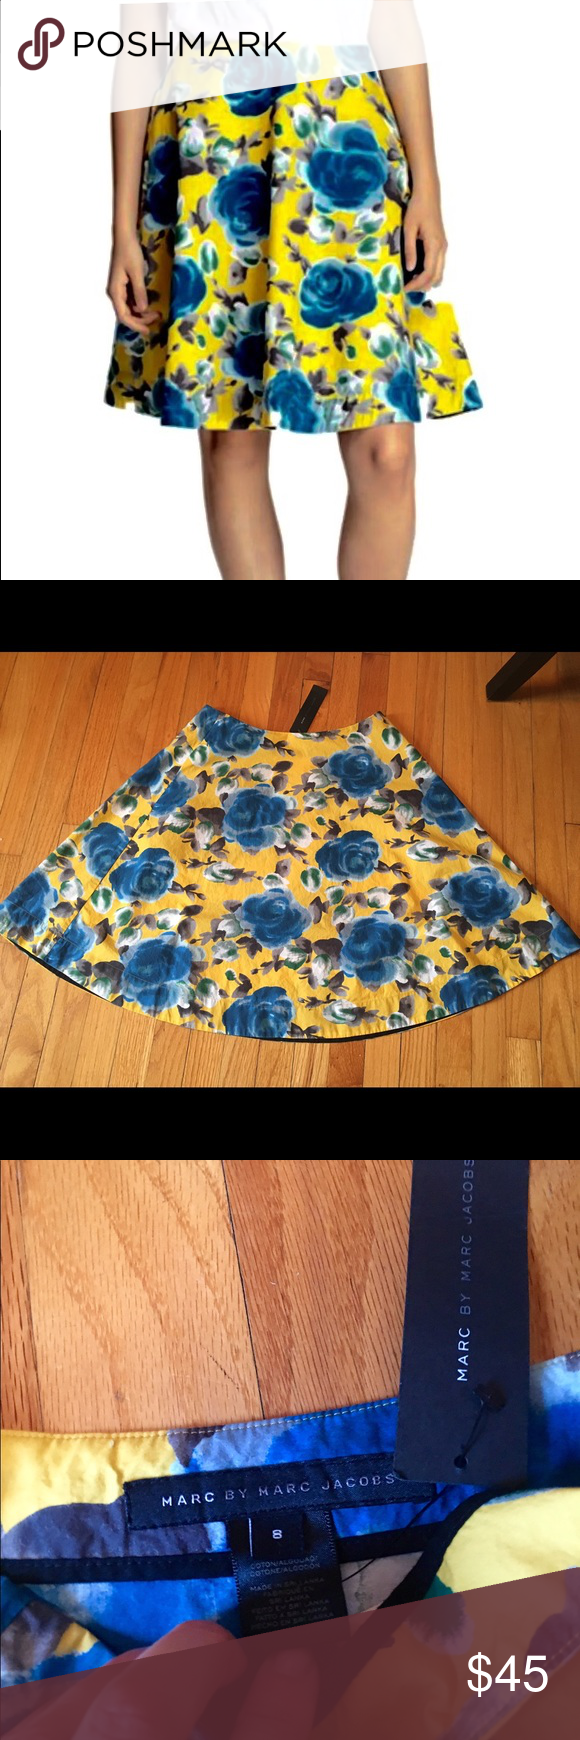 NEW Marc Jacobs Jerrie Rose Floral Circle Skirt Beautiful NEW Marc by Marc Jacobs vintage inspired floral skirt, featuring blue roses on a yellow background. Size 8. Perfect for spring and summer! Marc by Marc Jacobs Skirts Circle & Skater